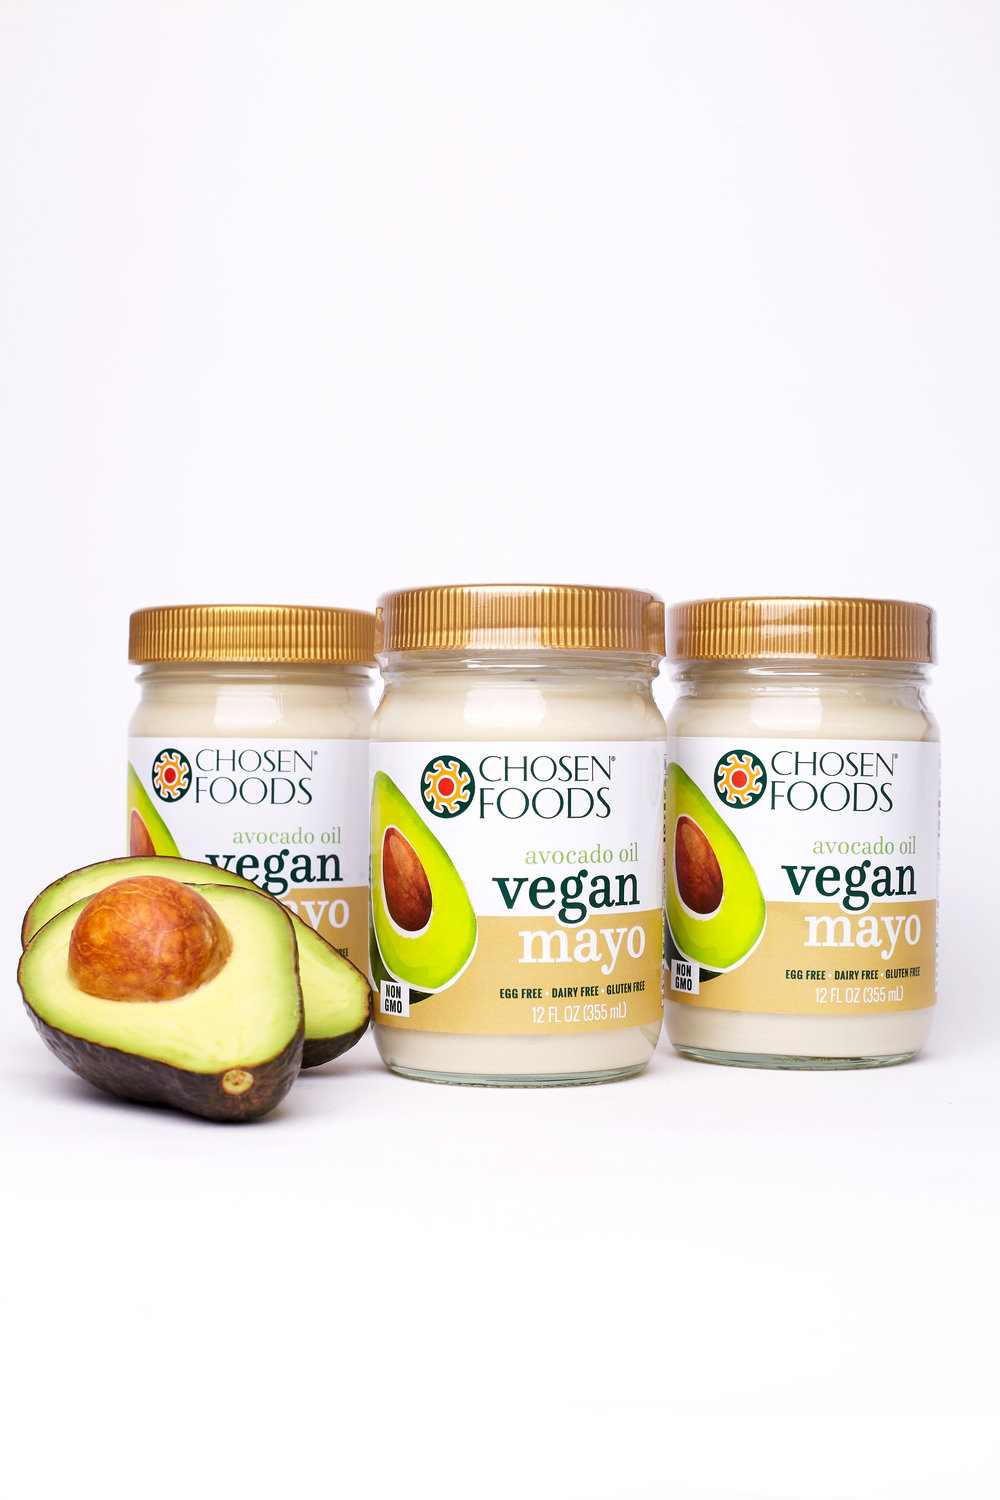 NEW! - AVOCADO OIL VEGAN MAYO